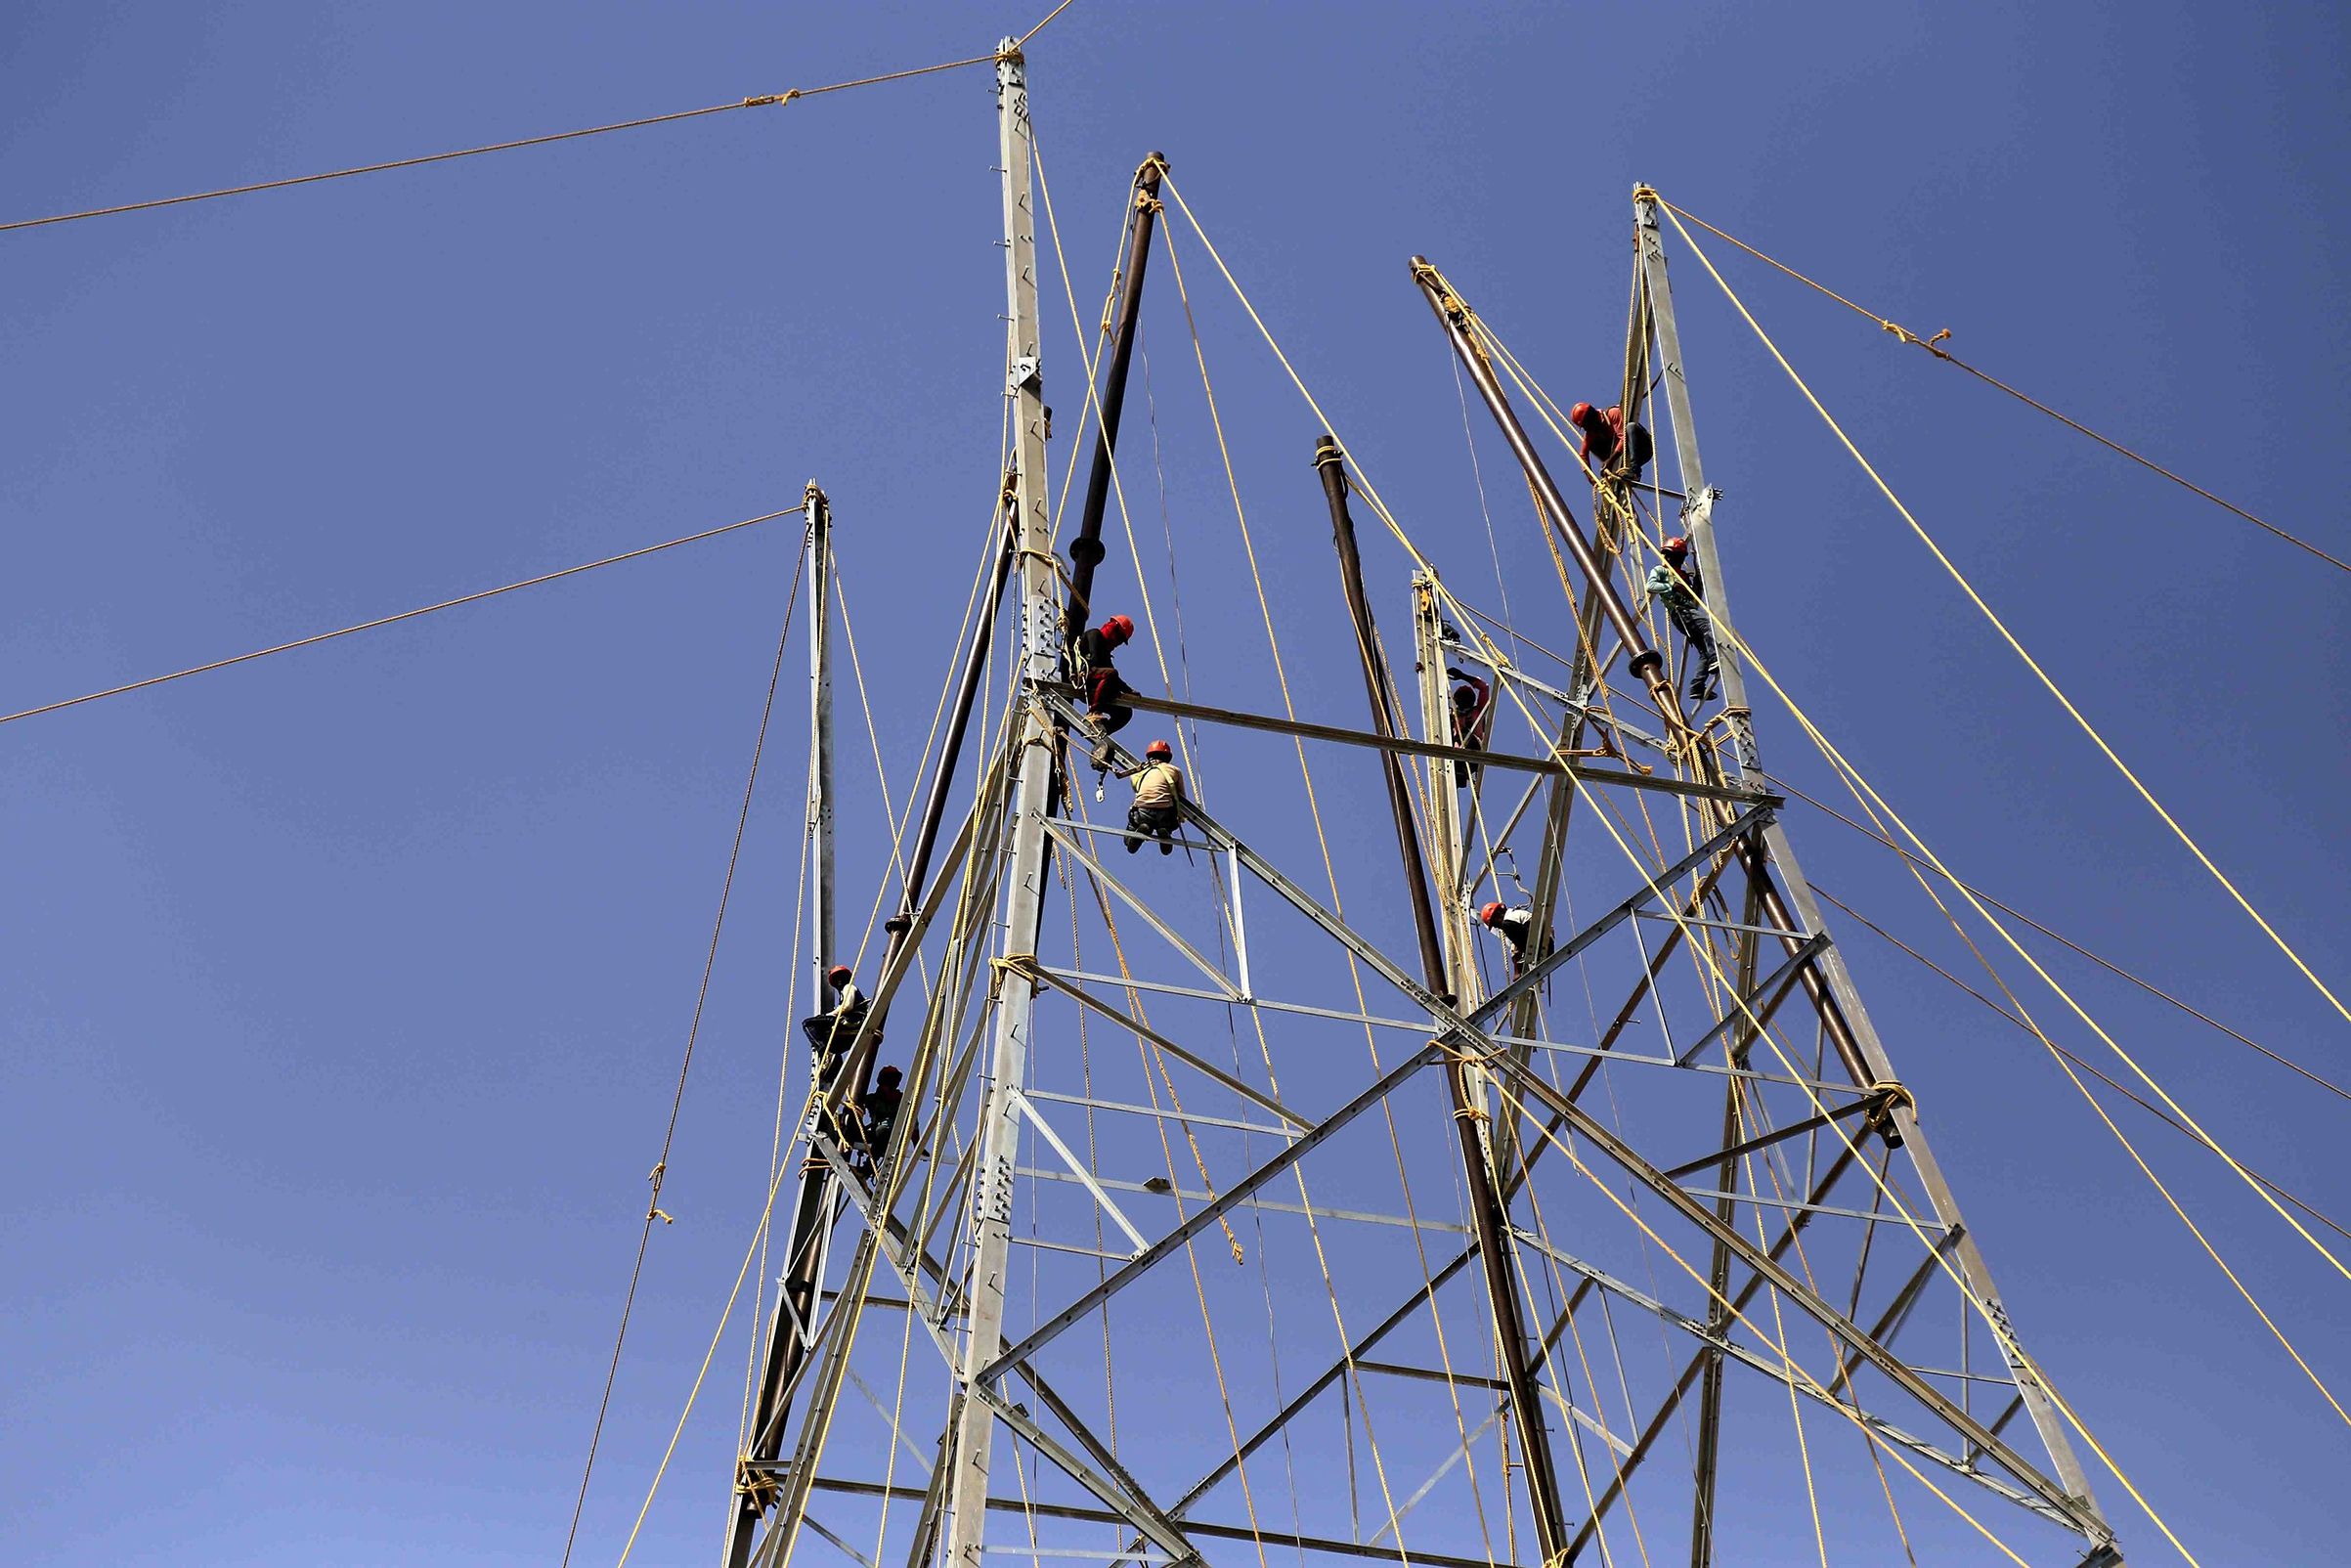 Indian workers install a new electric pole for power lines on the outskirts of Ajmer, in the Indian state of Rajasthan on April 14, 2018